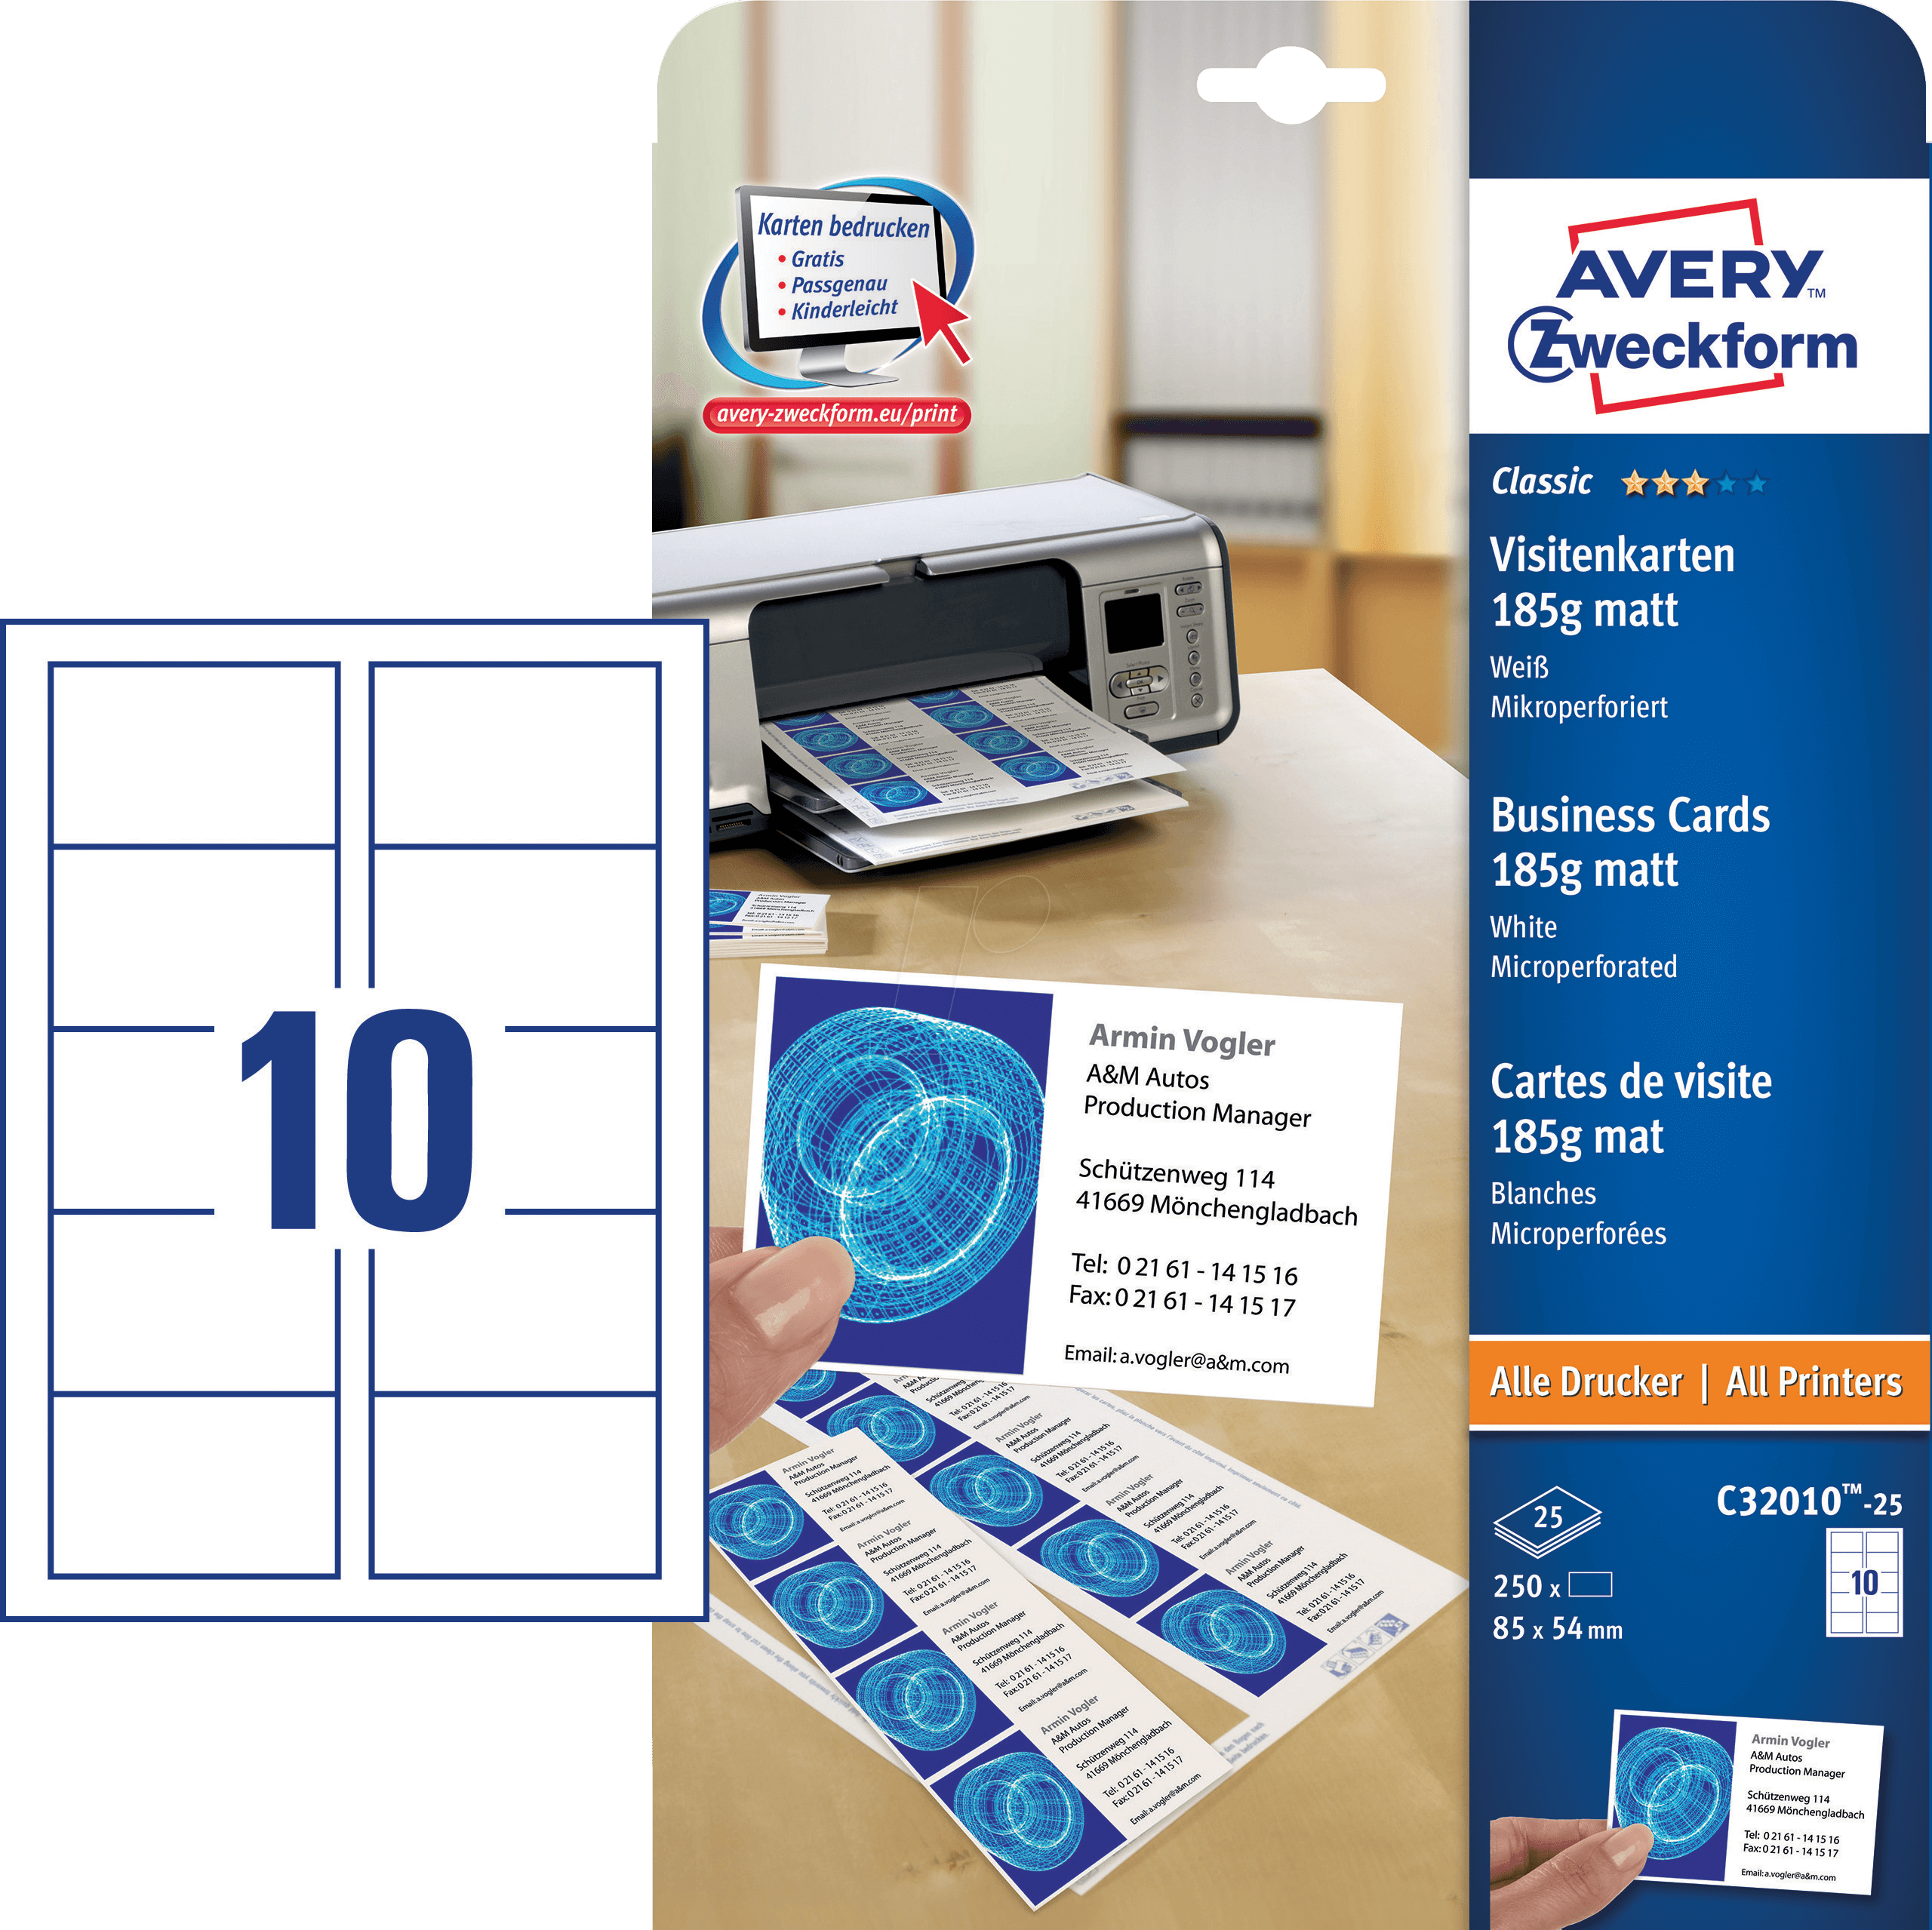 250 Cartes De Visite Avec Microperforation AVERY ZWECKFORM C32010 25